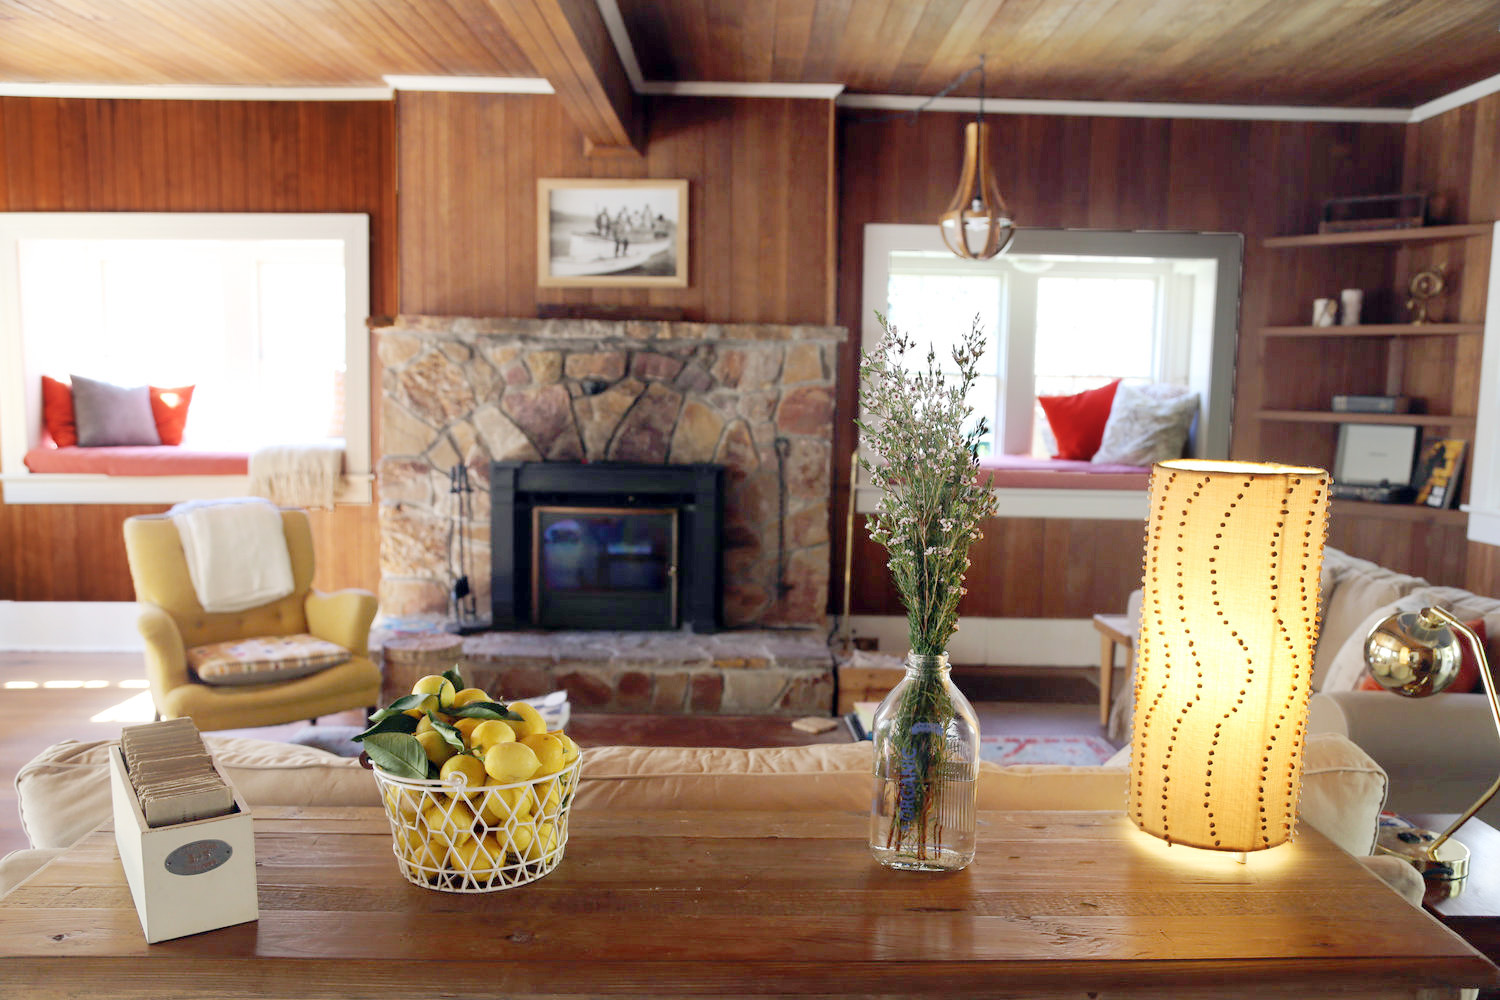 Fruit and floral arrangements on a console table in living room with stone fireplace